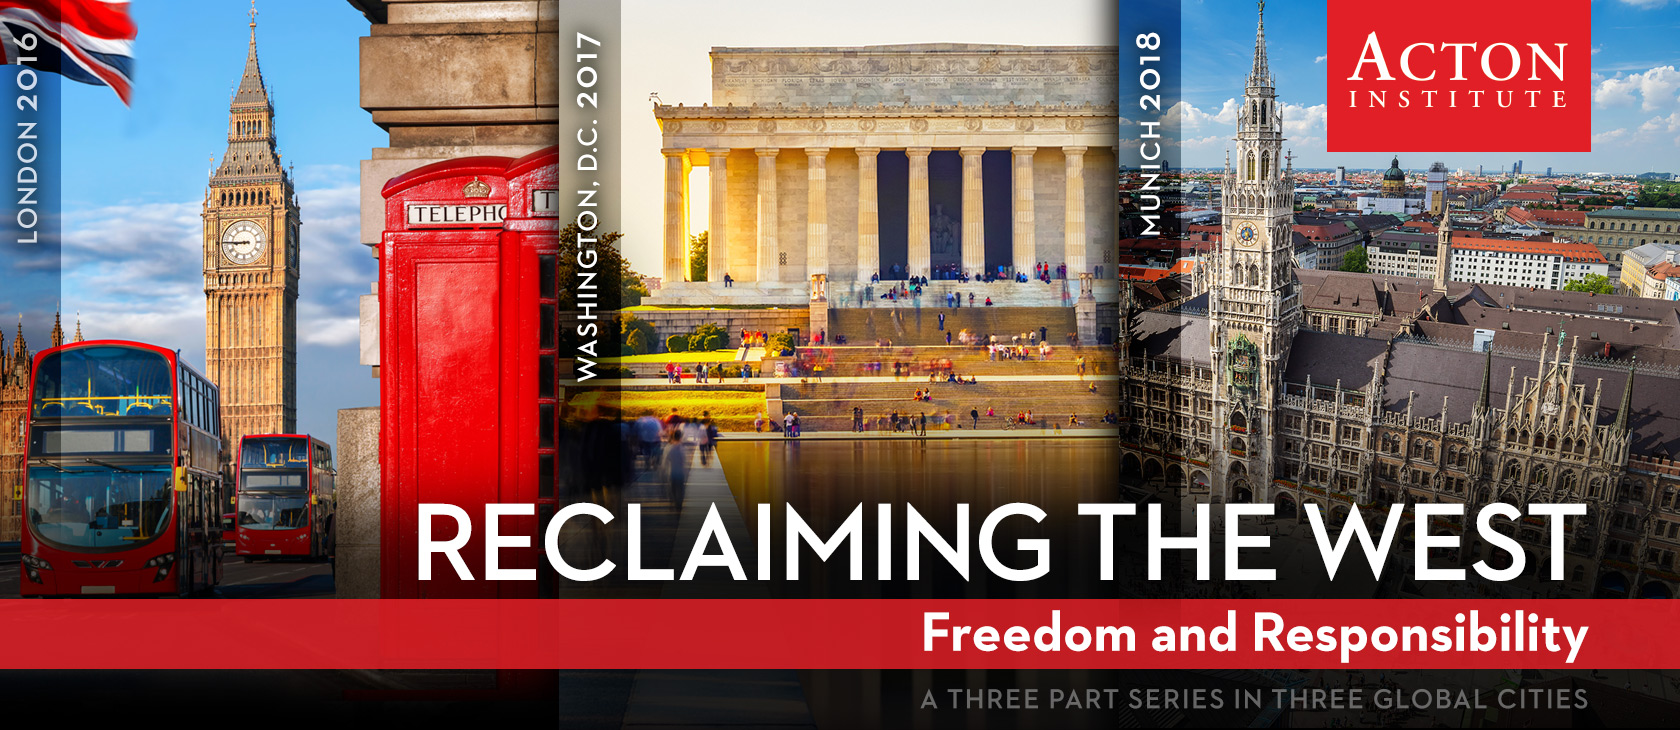 Reclaiming the West: Freedom and Responsibility | Acton